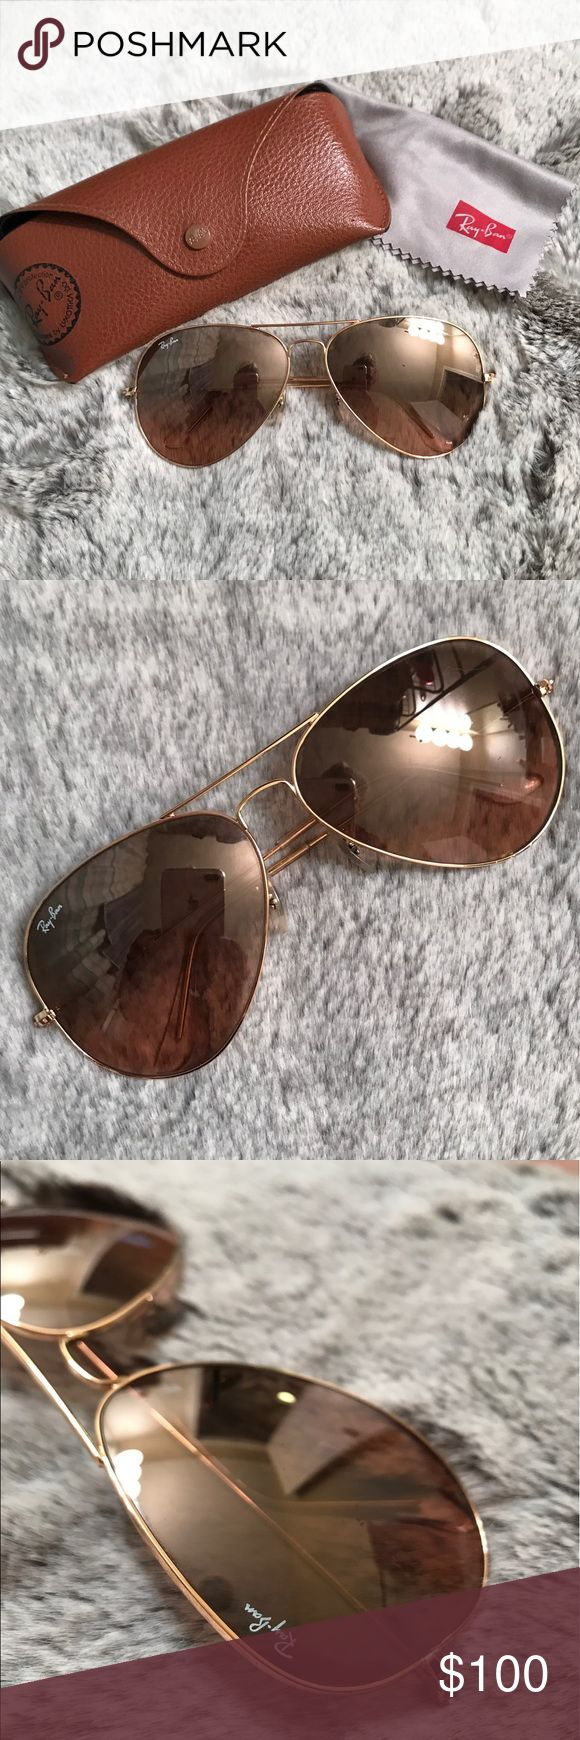 Ray-ban Large Aviator Sunglasses Used. Lenses have scratches on them. These are the 58 mm sized aviators. 100% authentic, purchased from Nordstroms. Comes with case and rag. Ray-Ban Accessories Sunglasses